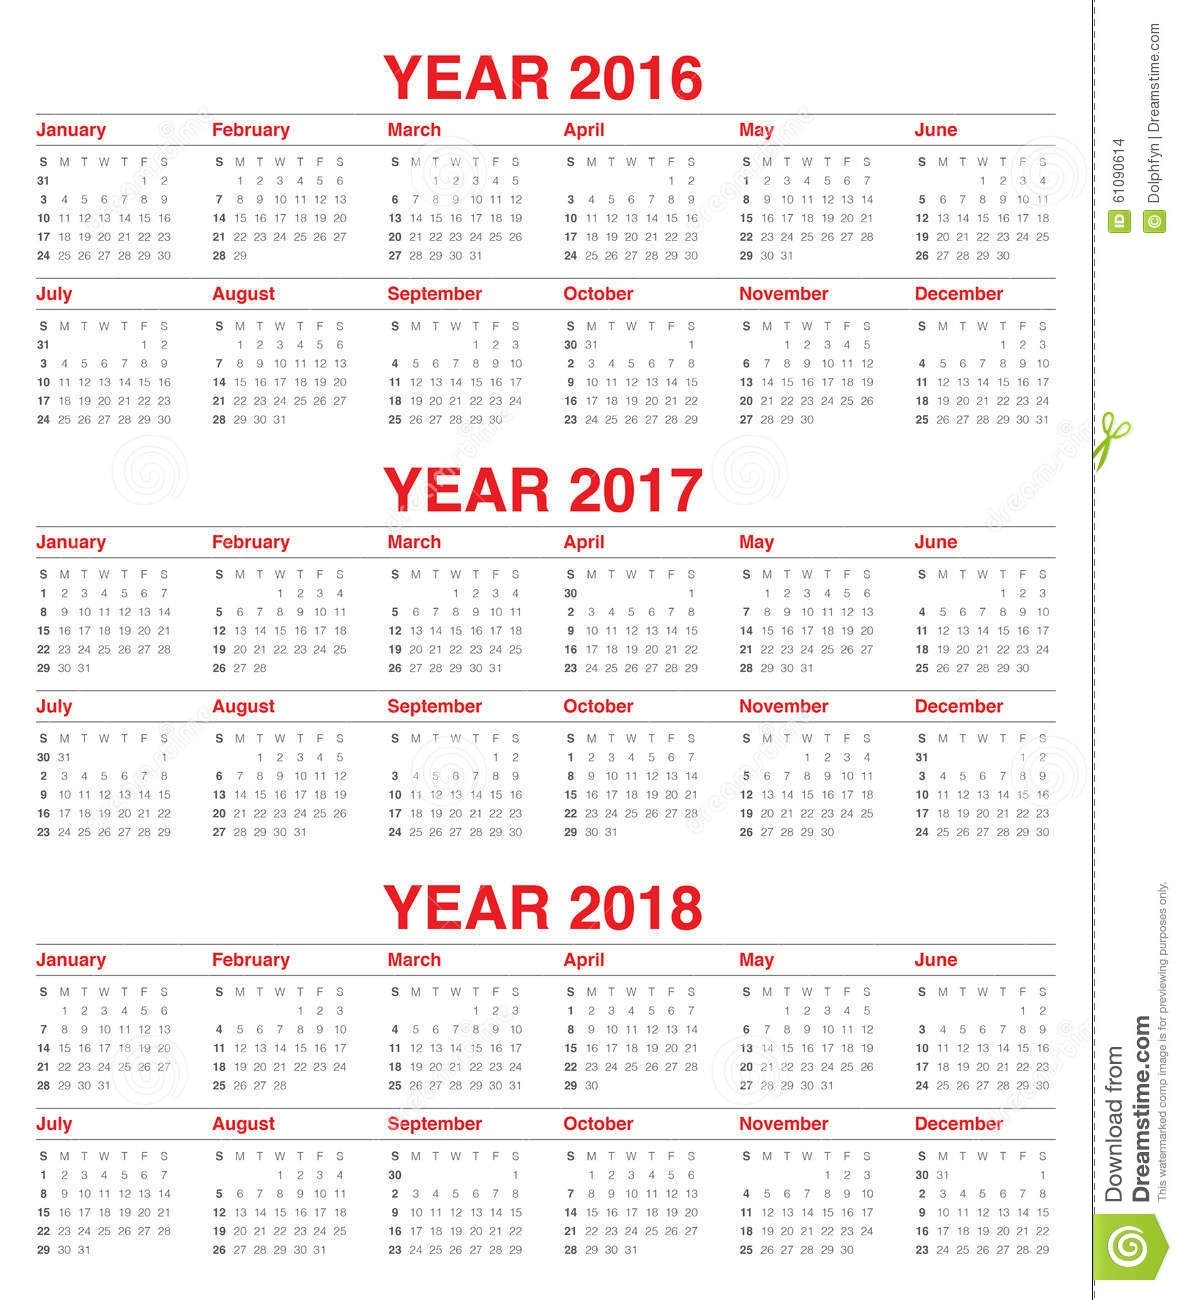 Calendar 2016 2017 2018 Stock Vector. Illustration Of Calendar  Bengali Calander Pic This Year Free Pic Downlode